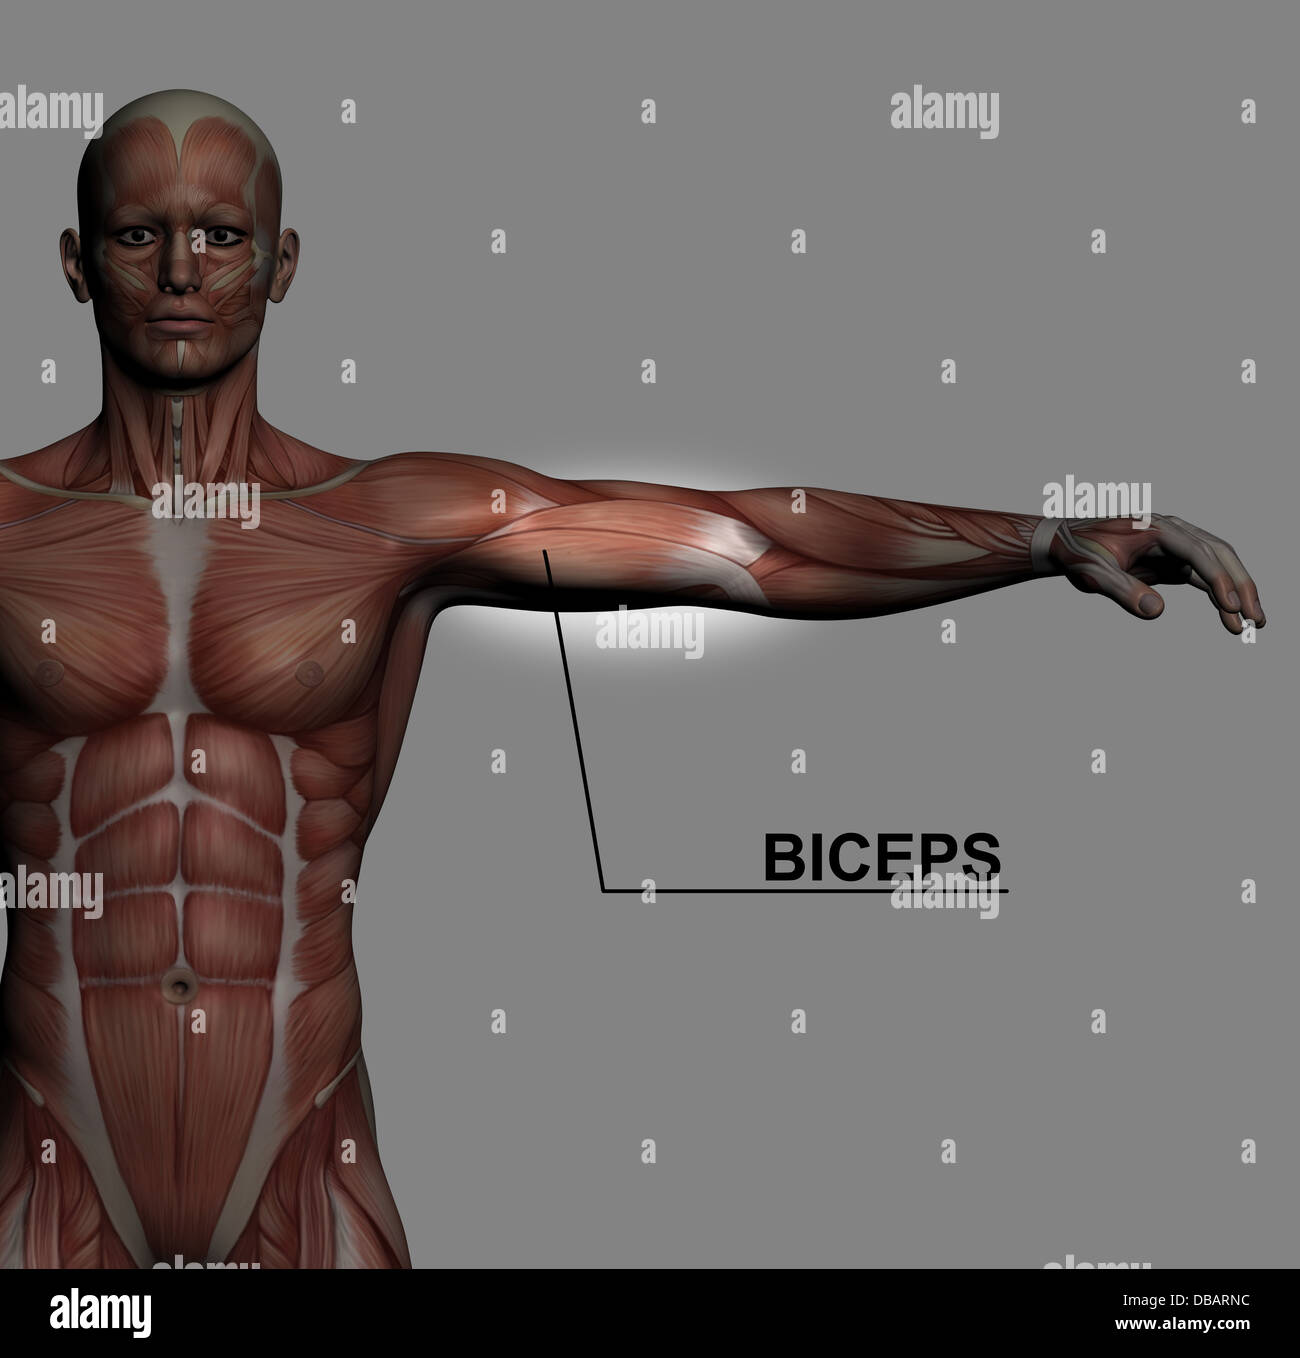 Human Anatomy Male Muscles Made In 3d Software With Highlighting